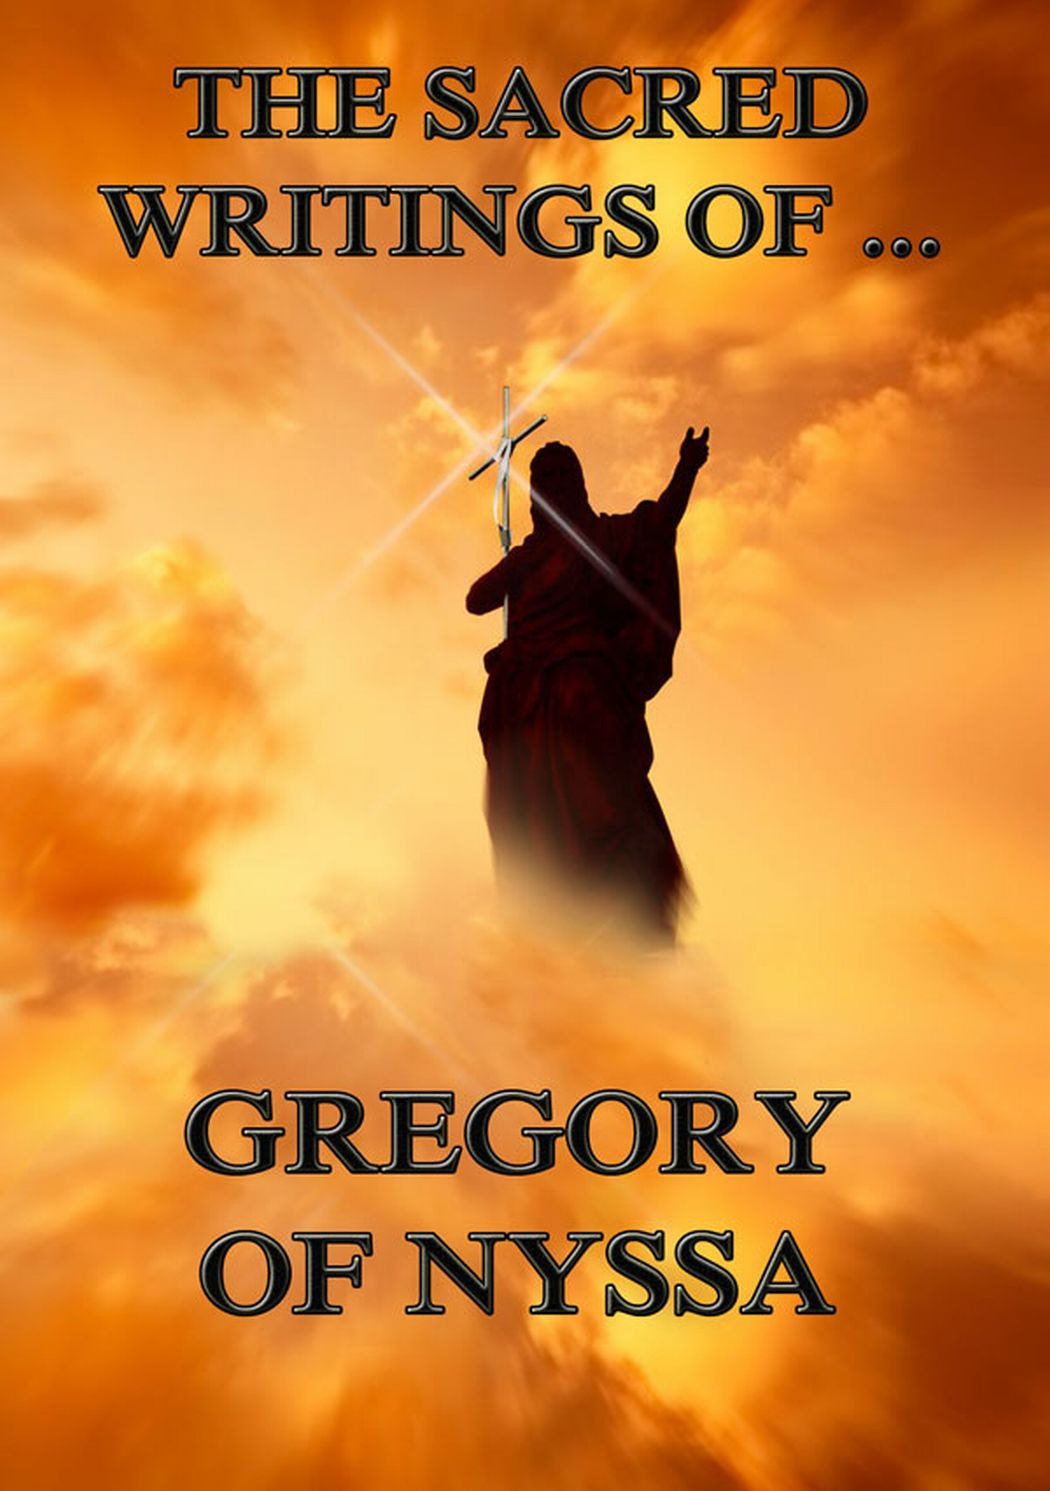 Gregory of Nyssa The Sacred Writings of Gregory of Nyssa the incredible transformation of gregory todd